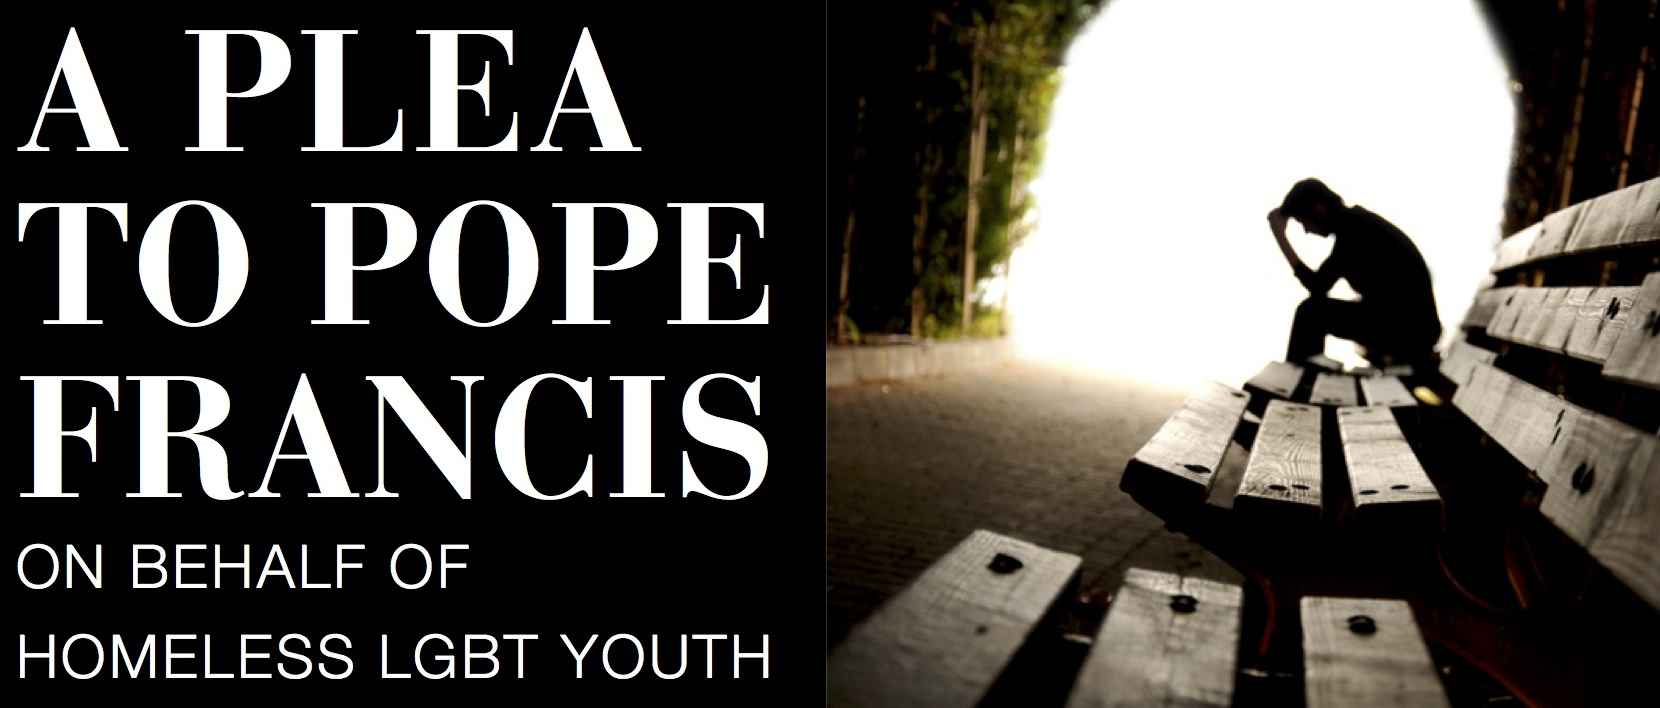 Homeless Lgbt Youth Advocate Publishes Plea To Pope